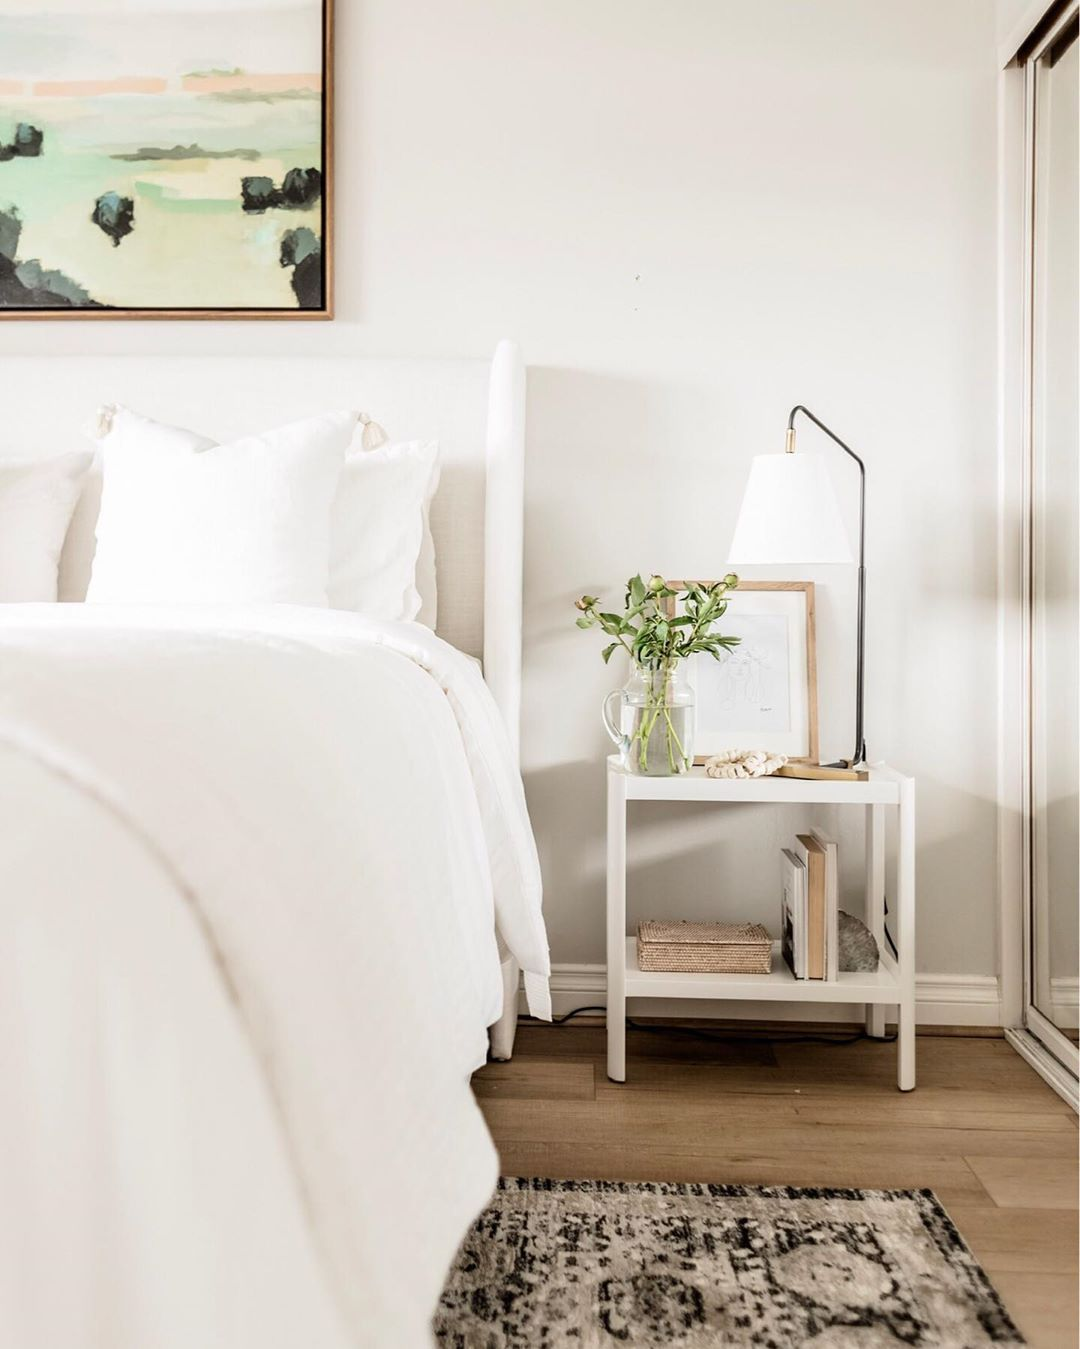 Katie Staples On Instagram Only A Few Hours Left To Shop Wayfair S 48 Hour Closeout Event Had To Share Ou Bedroom Essentials Guest Bedroom Decor Guest Bed